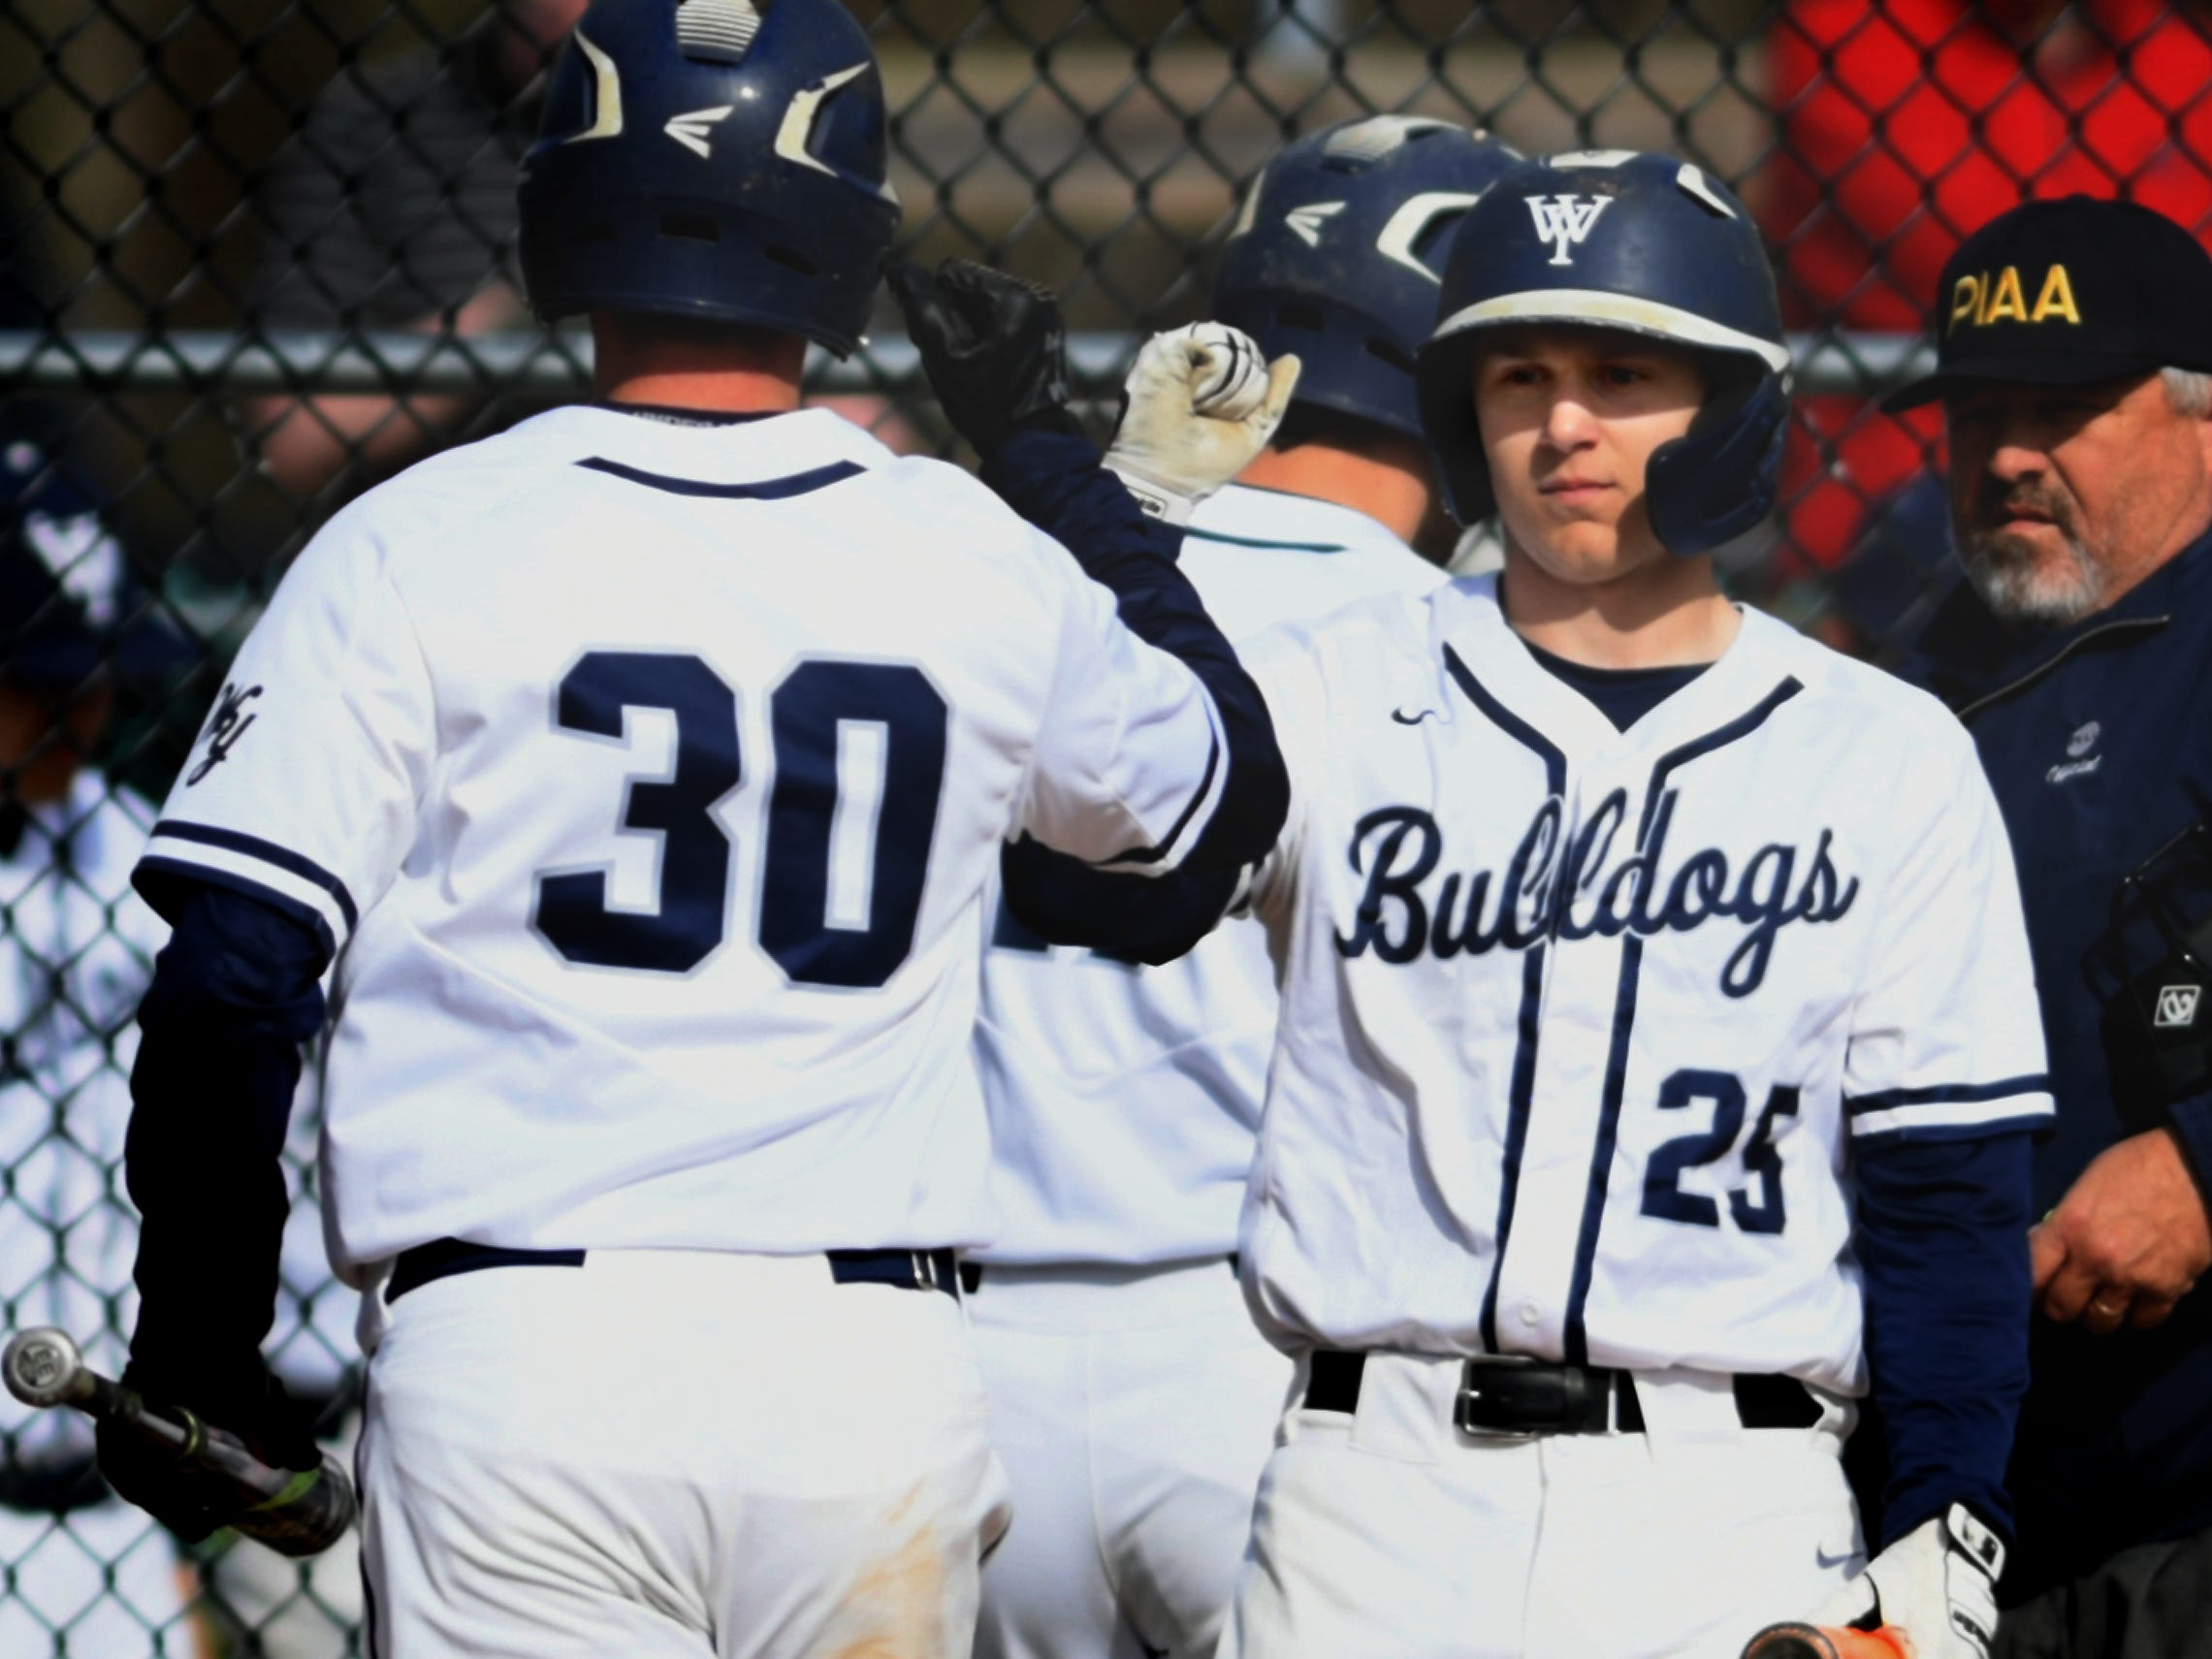 West York's Seth Eyler (30) is congratulated after scoring a run by teammate Noah Marshall during action with York High at Shiloh Wednesday, April 10, 2019. Bill Kalina photo